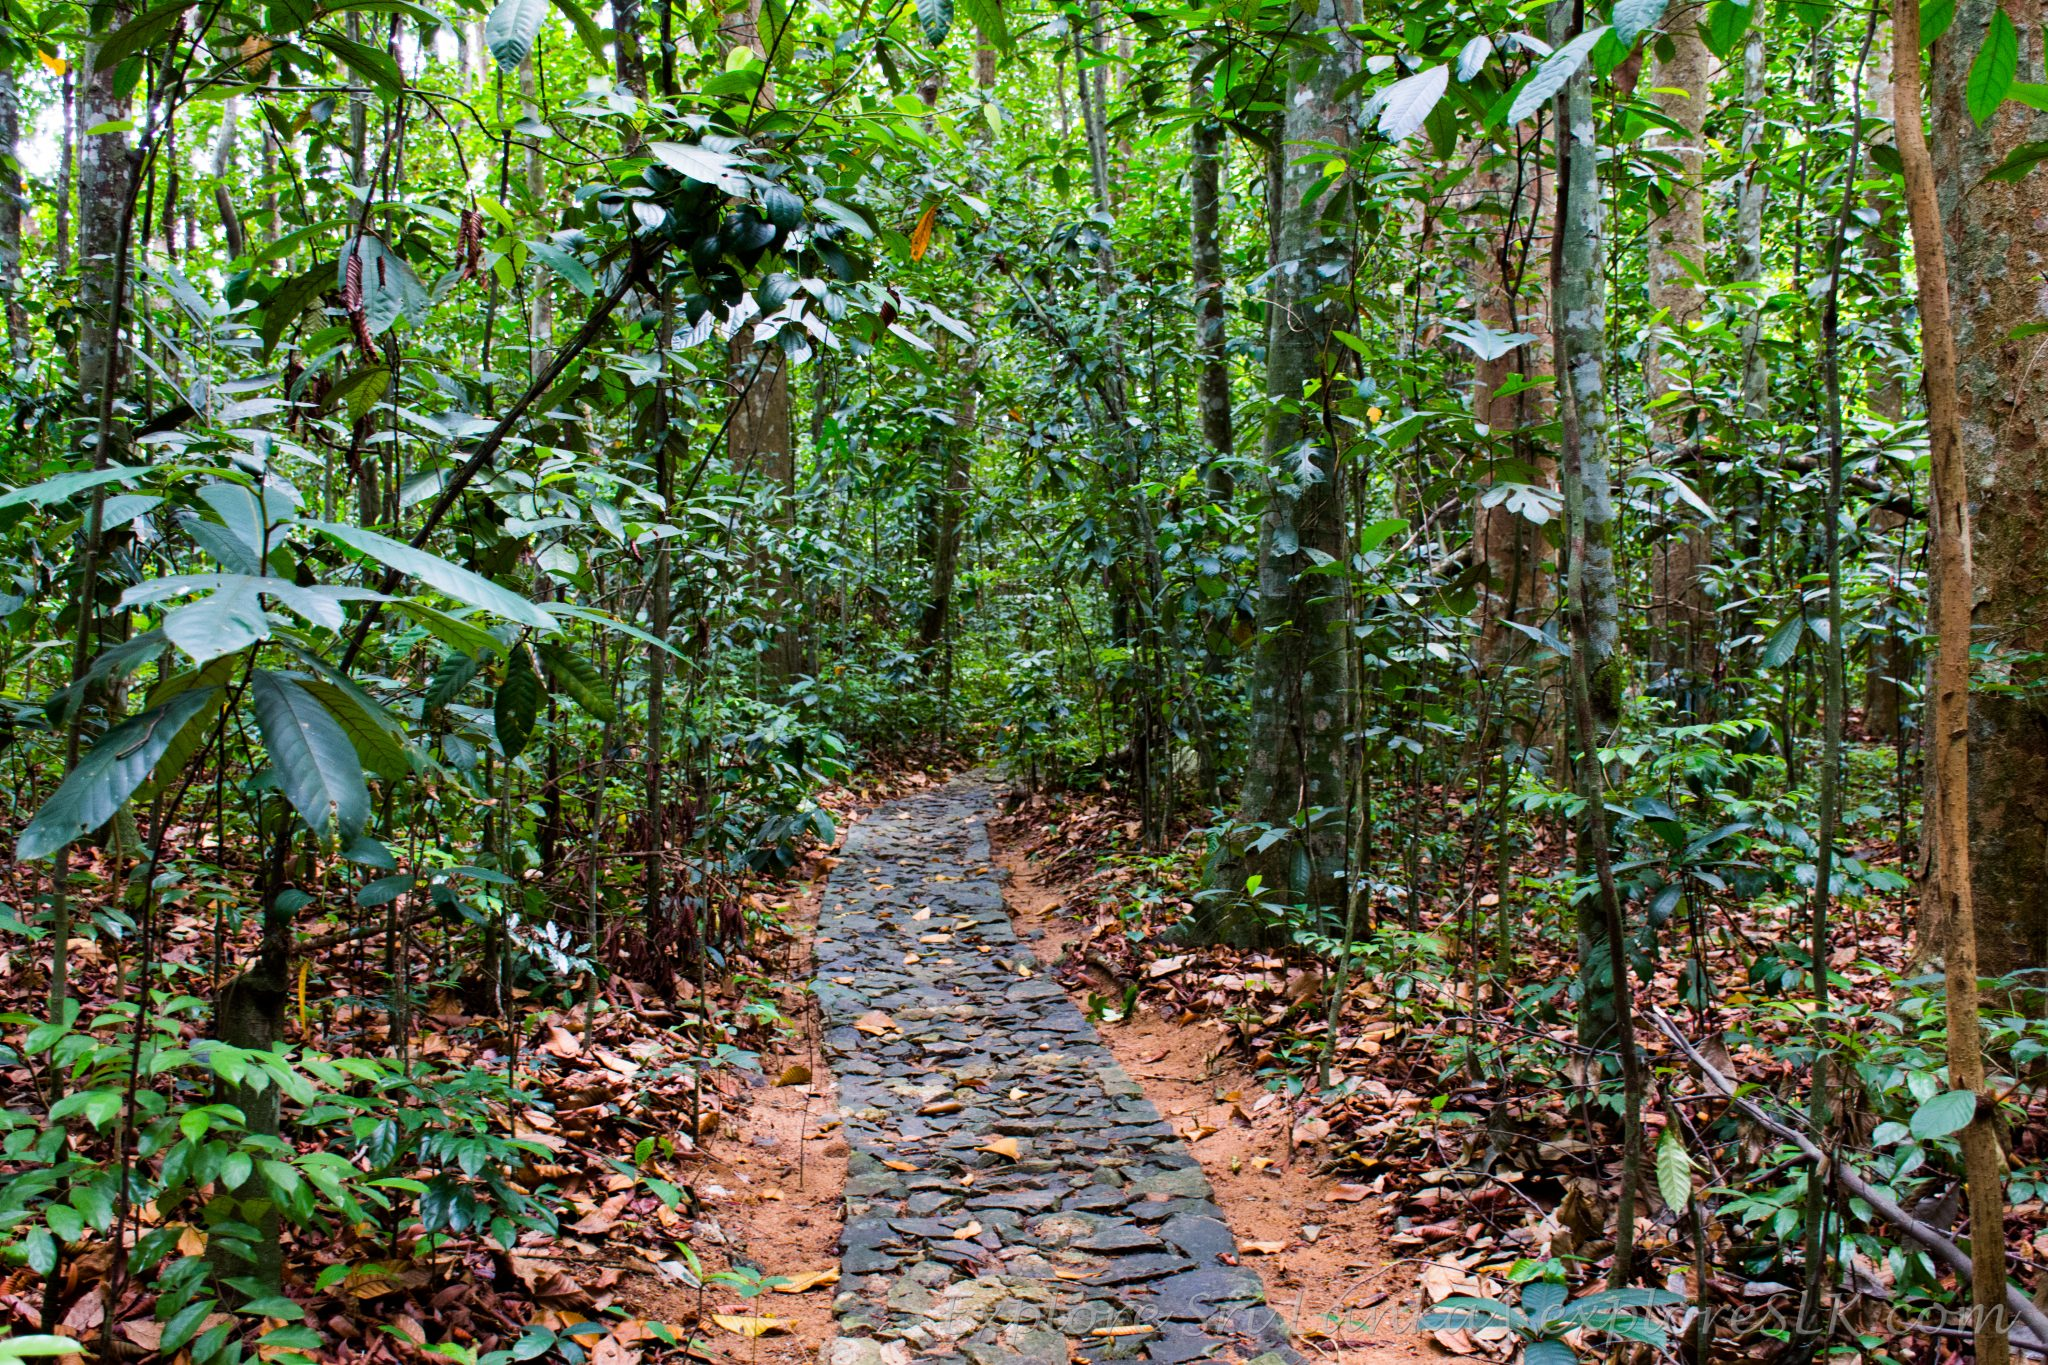 Footpath in Jungle